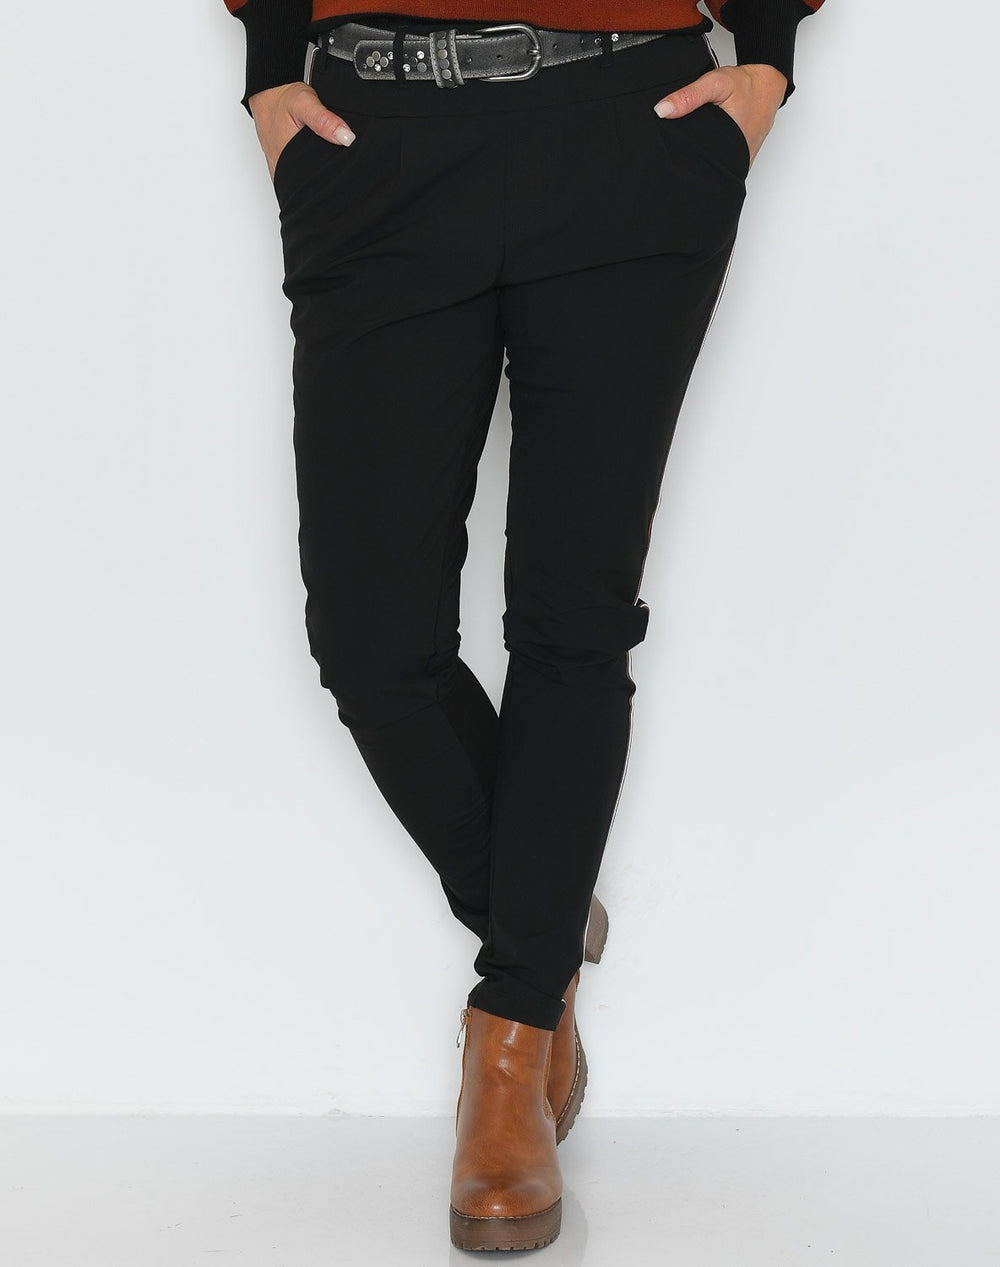 Kaffe KApila Jillian pants black deep - Online-Mode